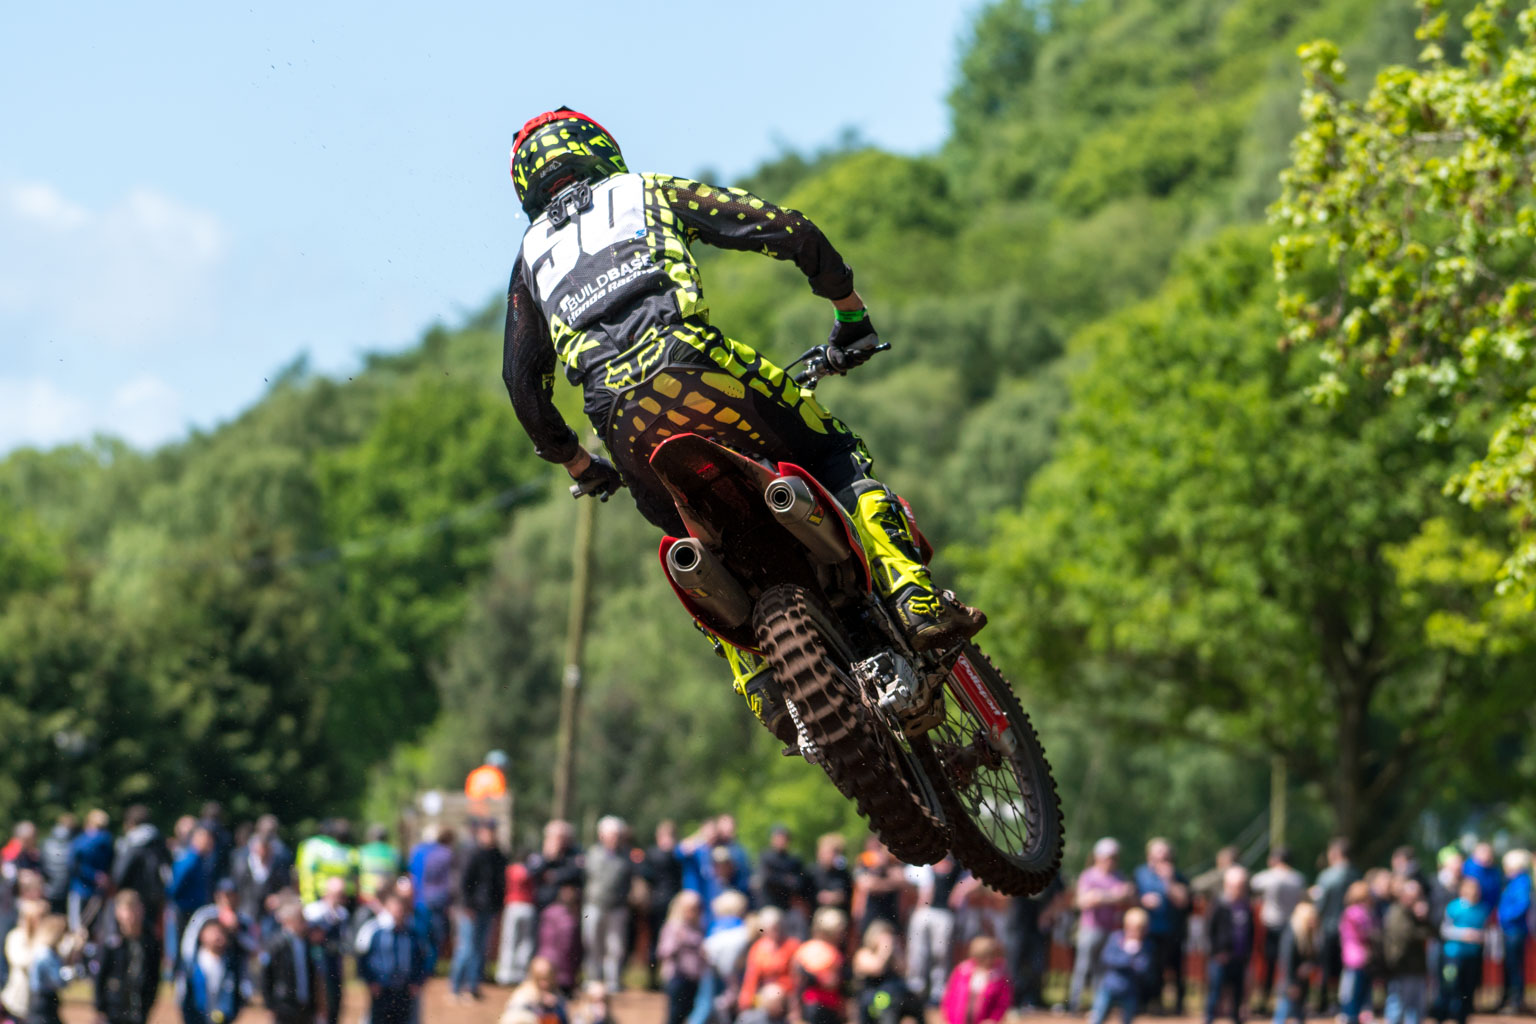 Martin Barr took third in MX2